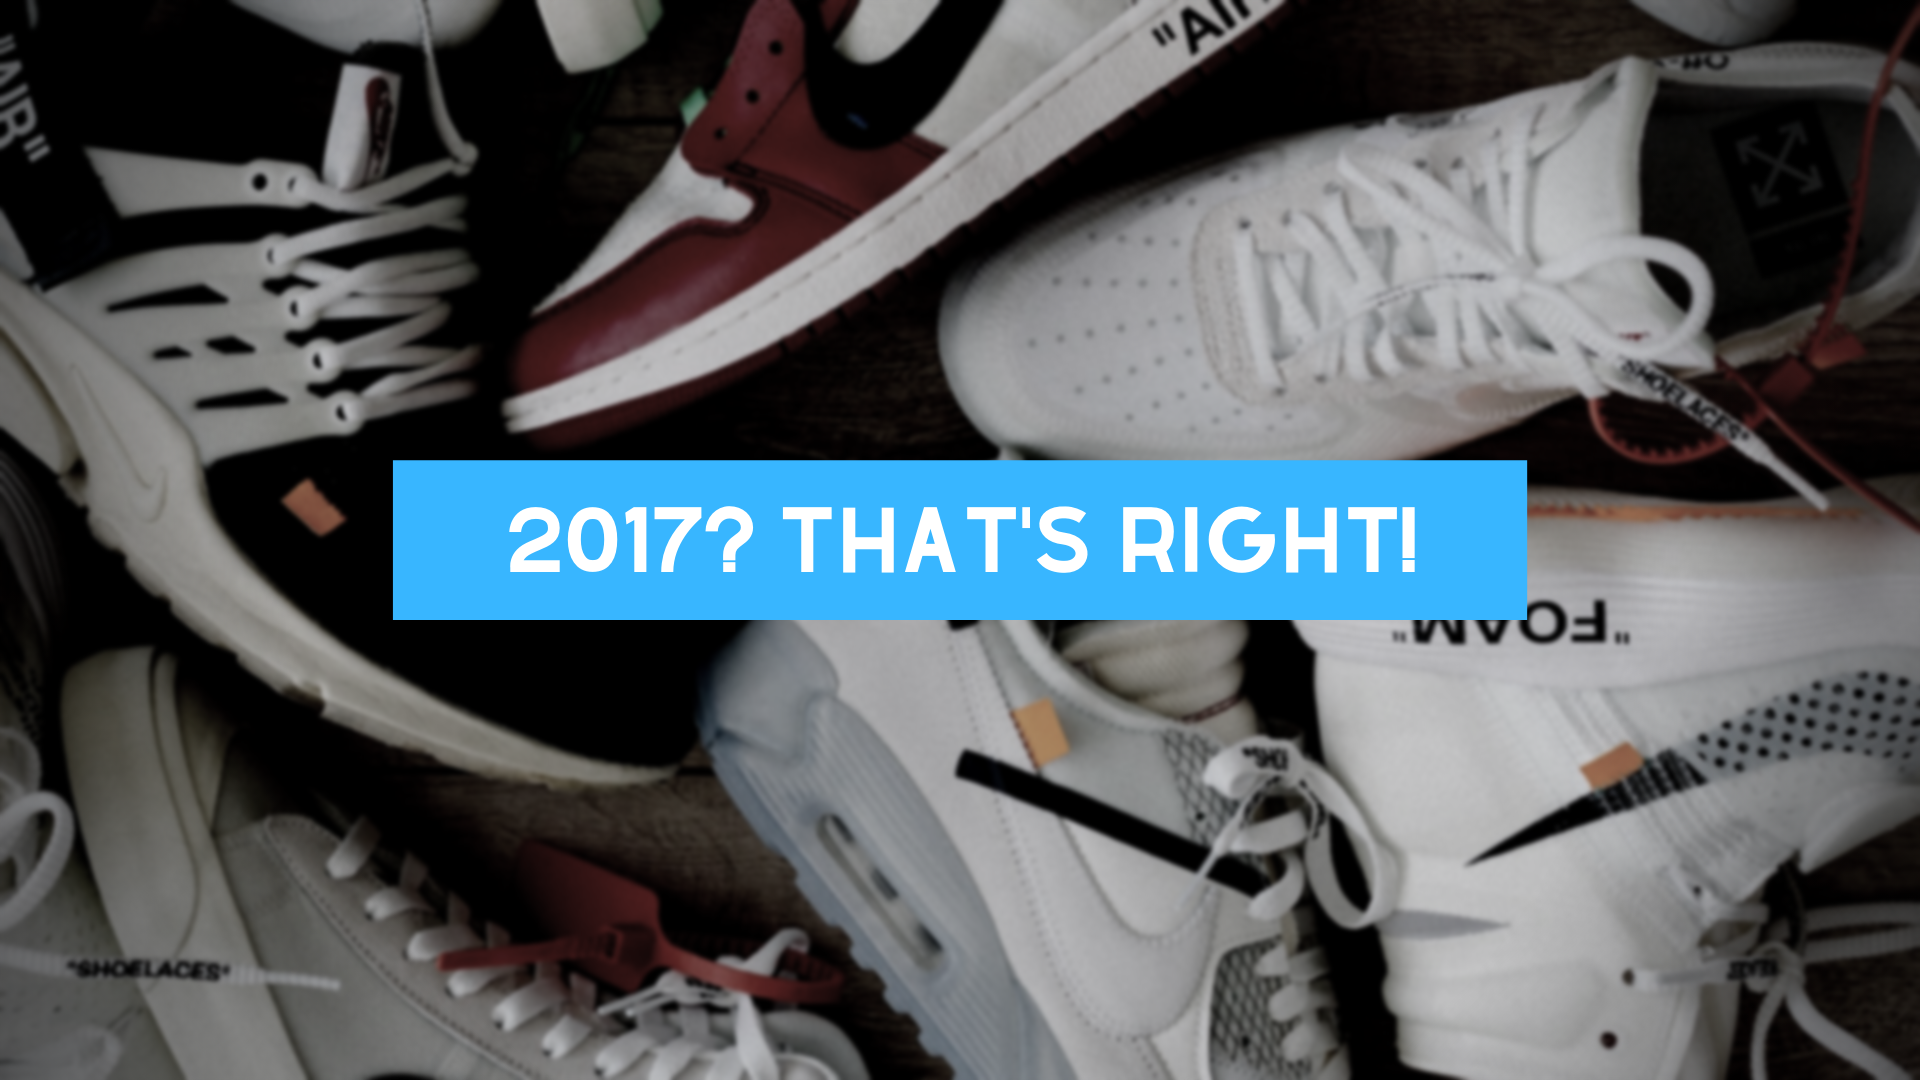 The Best Nike Basketball Shoes of 2017: Why 2017?